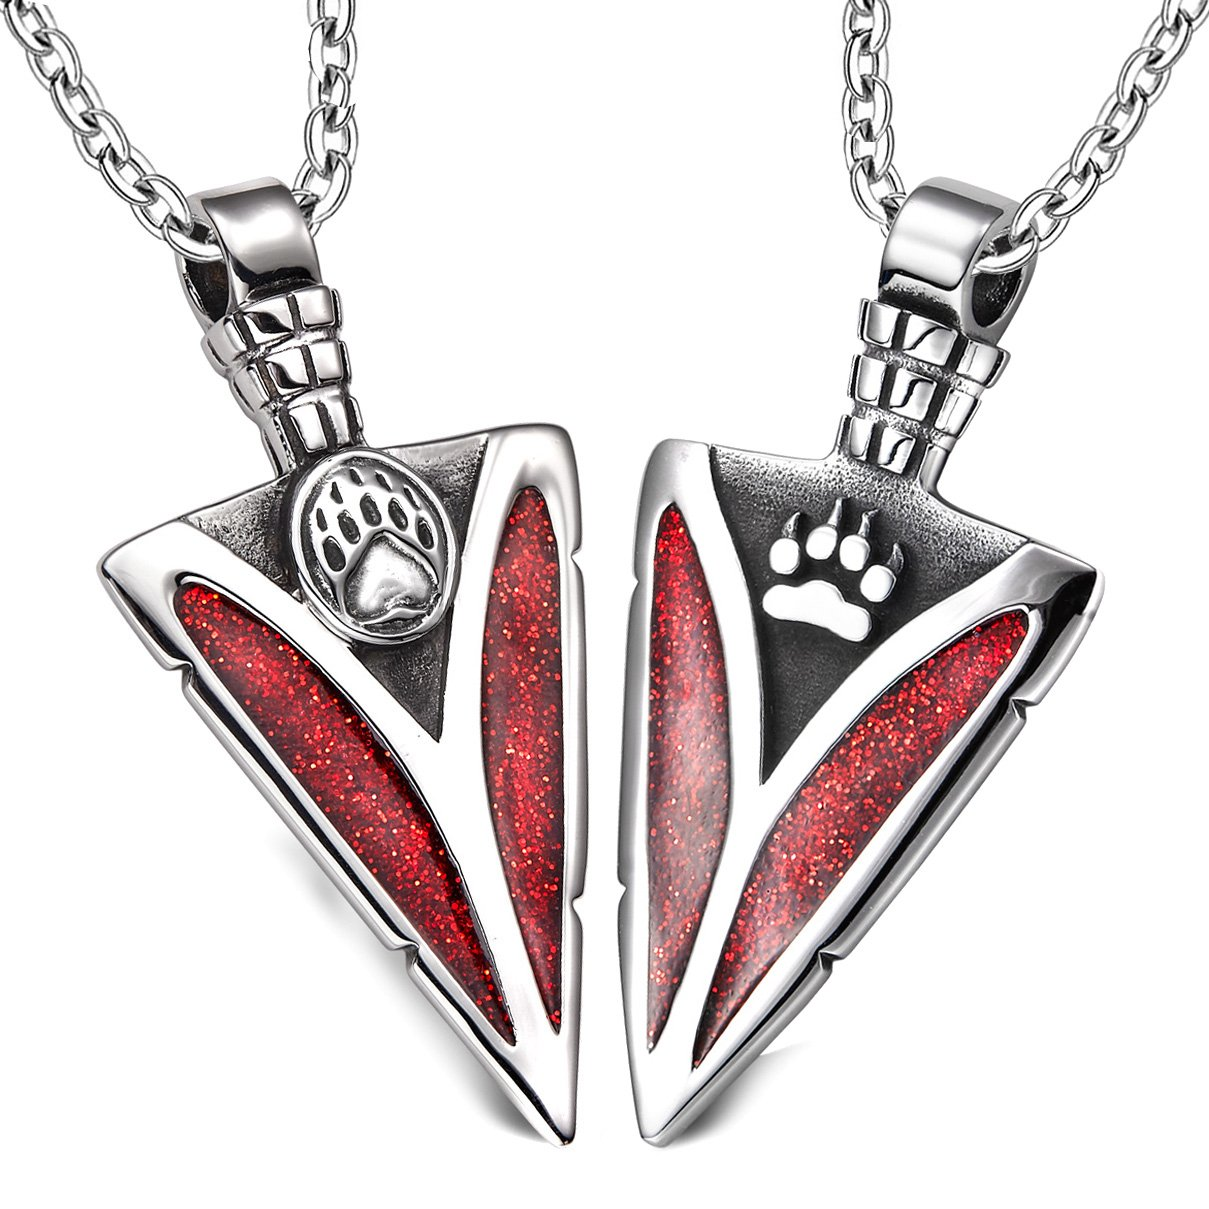 Arrowhead Wolf and Bear Paws Love Couples or BFF Set Protection Amulets Sparkling Royal Red Necklaces